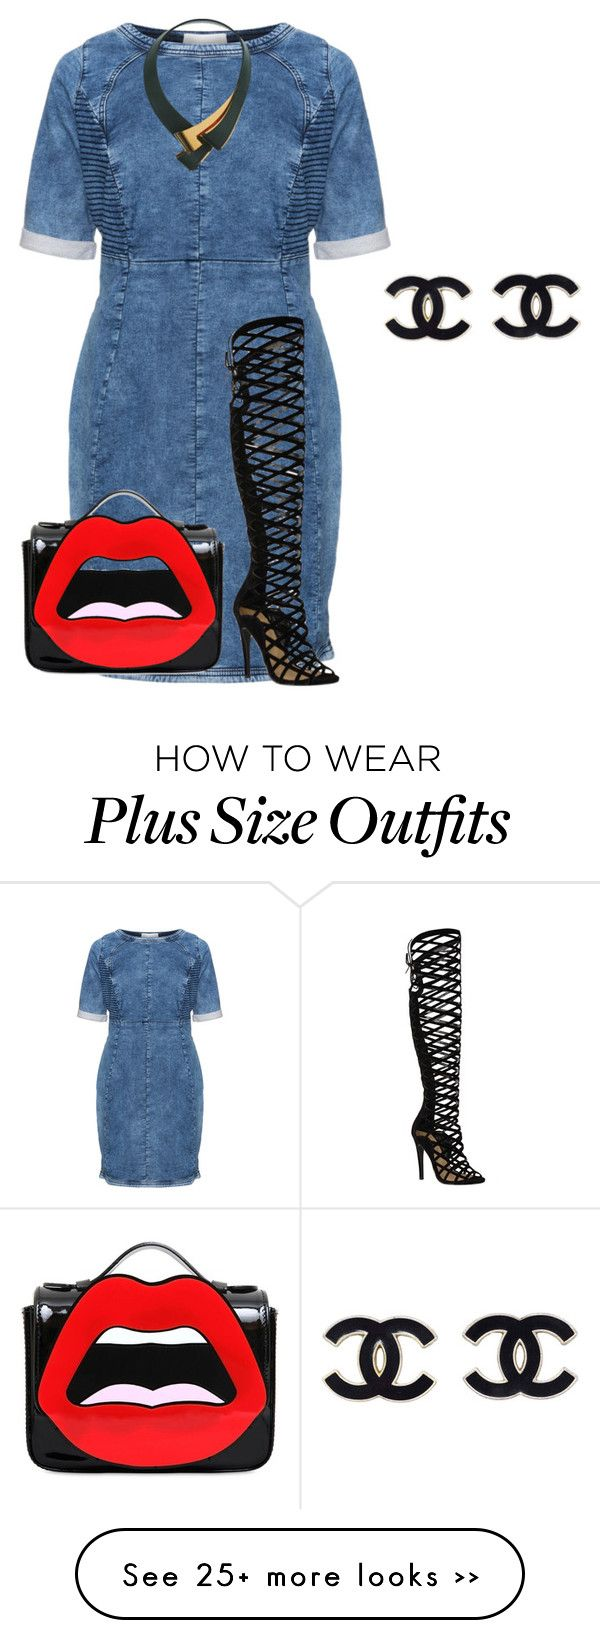 """curvy/plus, all eyes on you!"" by kristie-payne on Polyvore featuring Carmakoma, Yazbukey and Marni"